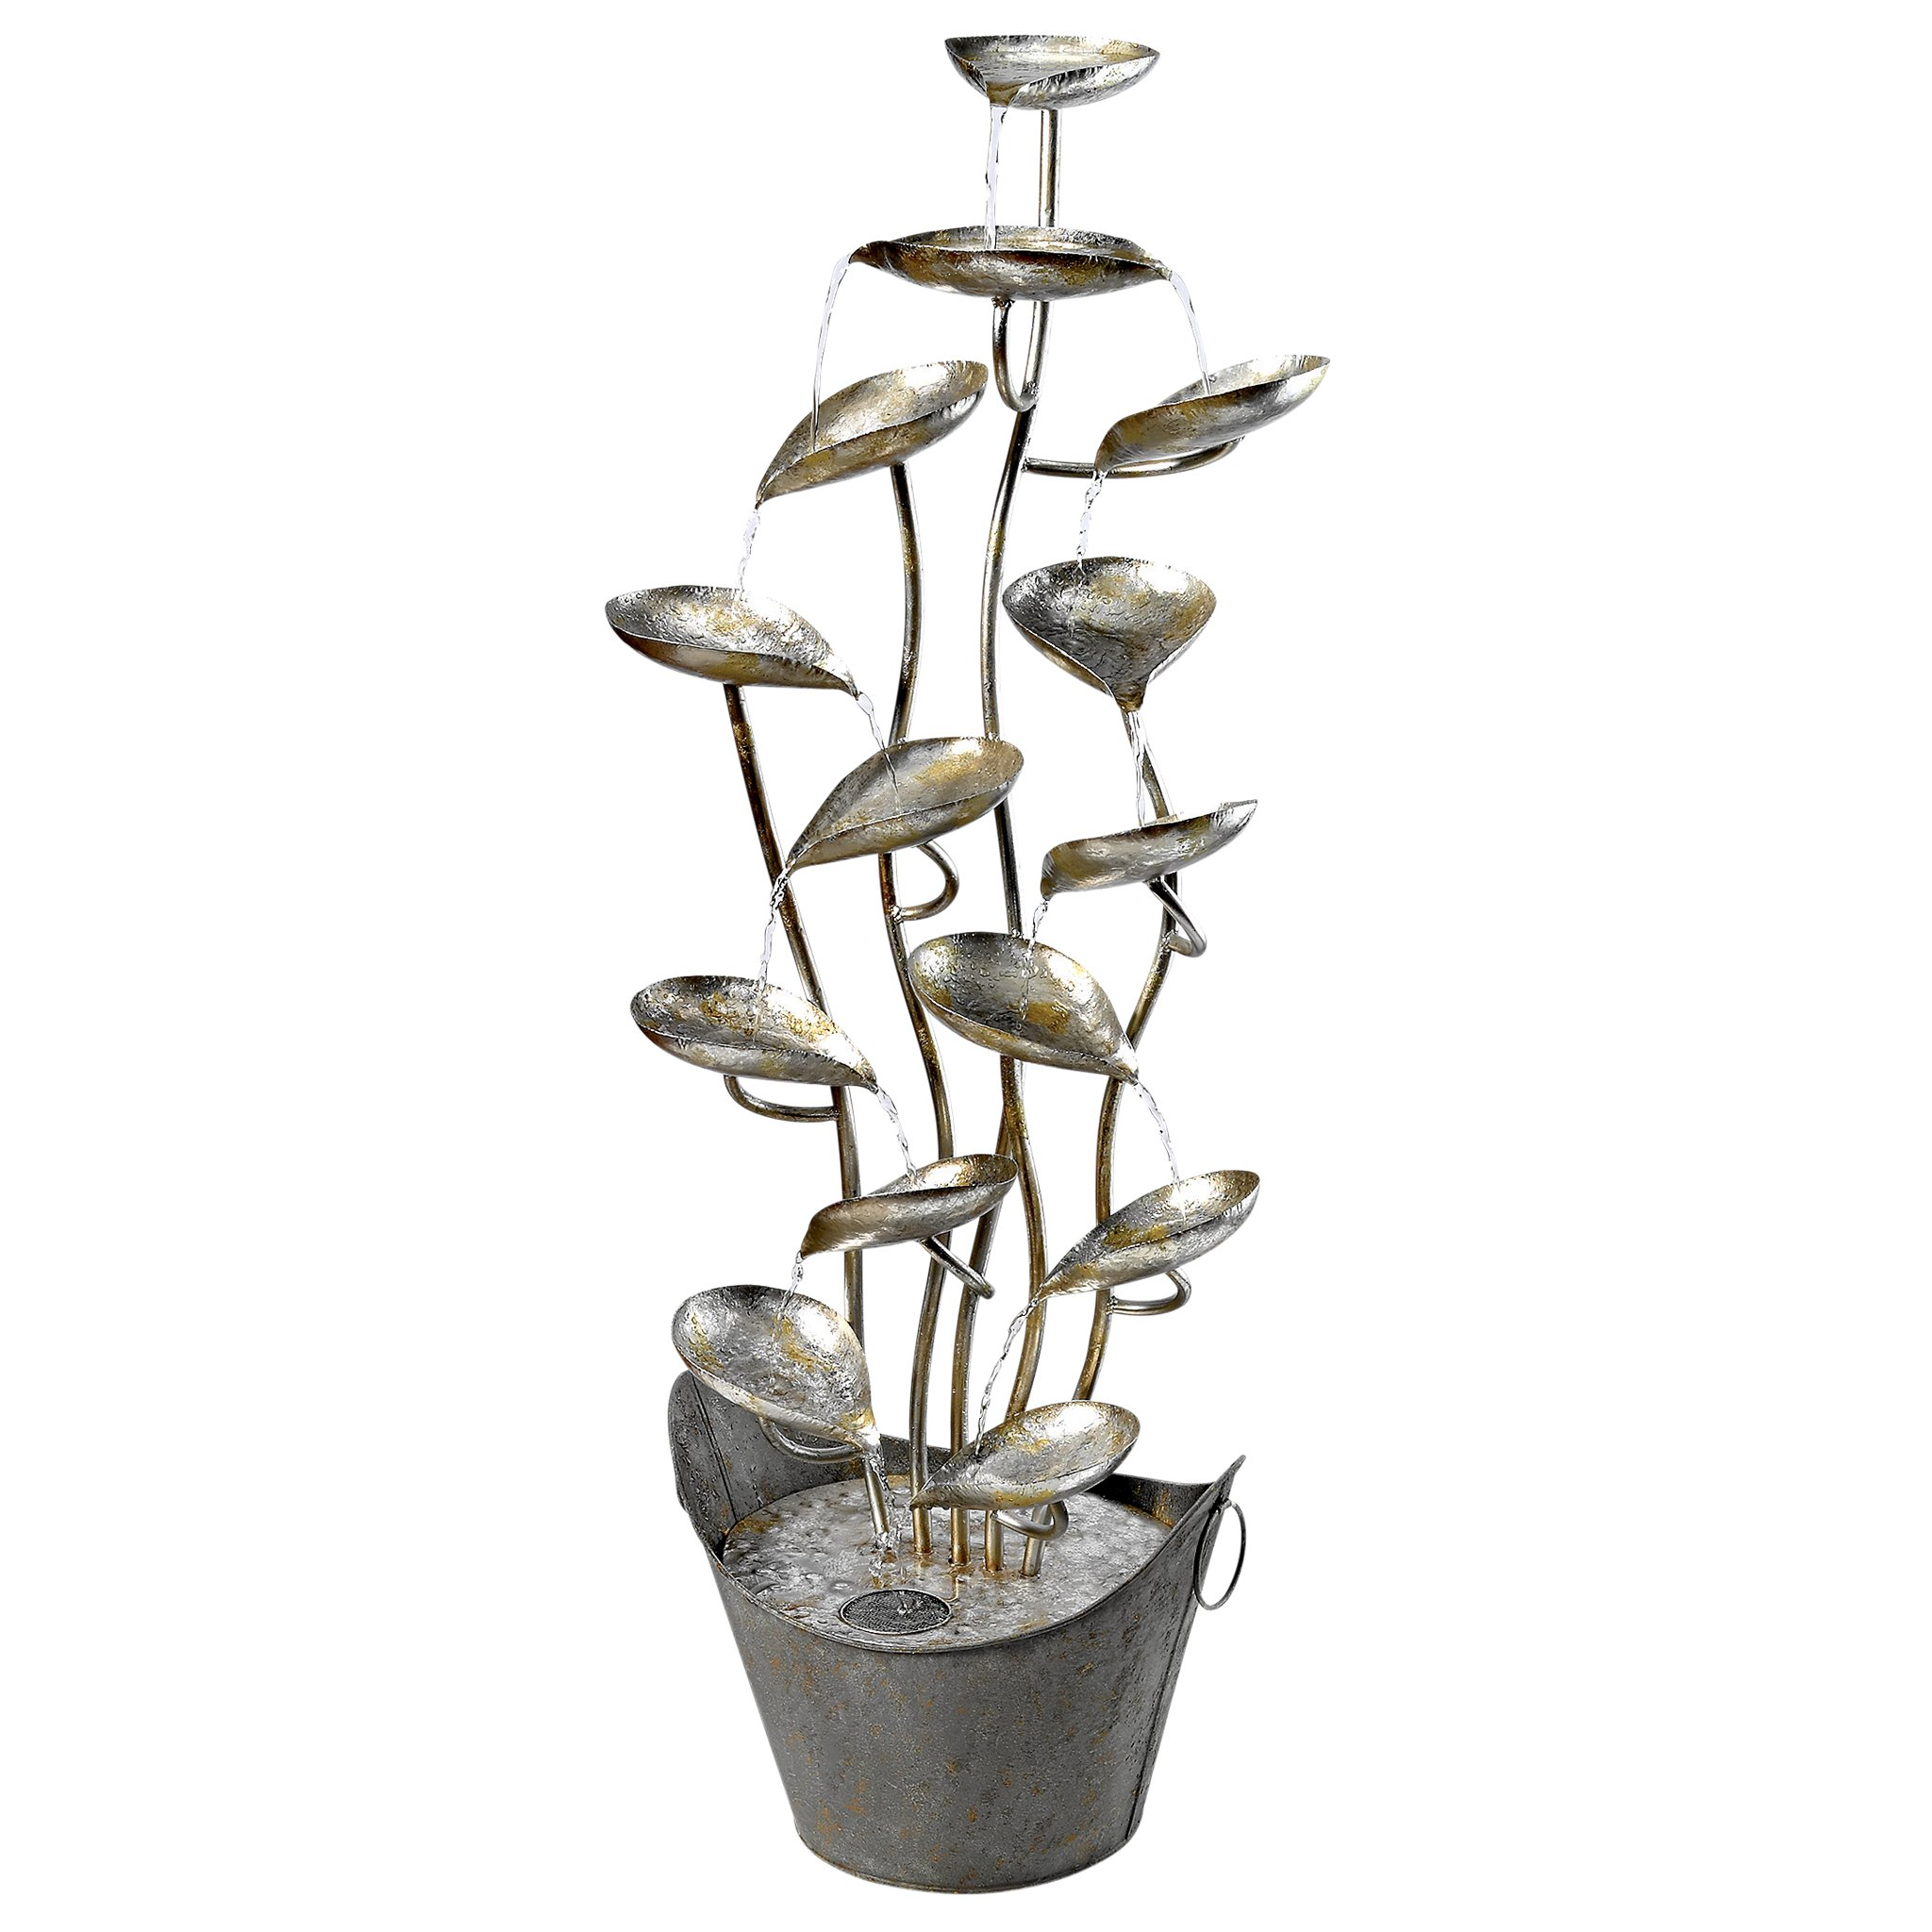 Design Toscano Rain Forest Leaves Cascading Metal Fountain by Design Toscano